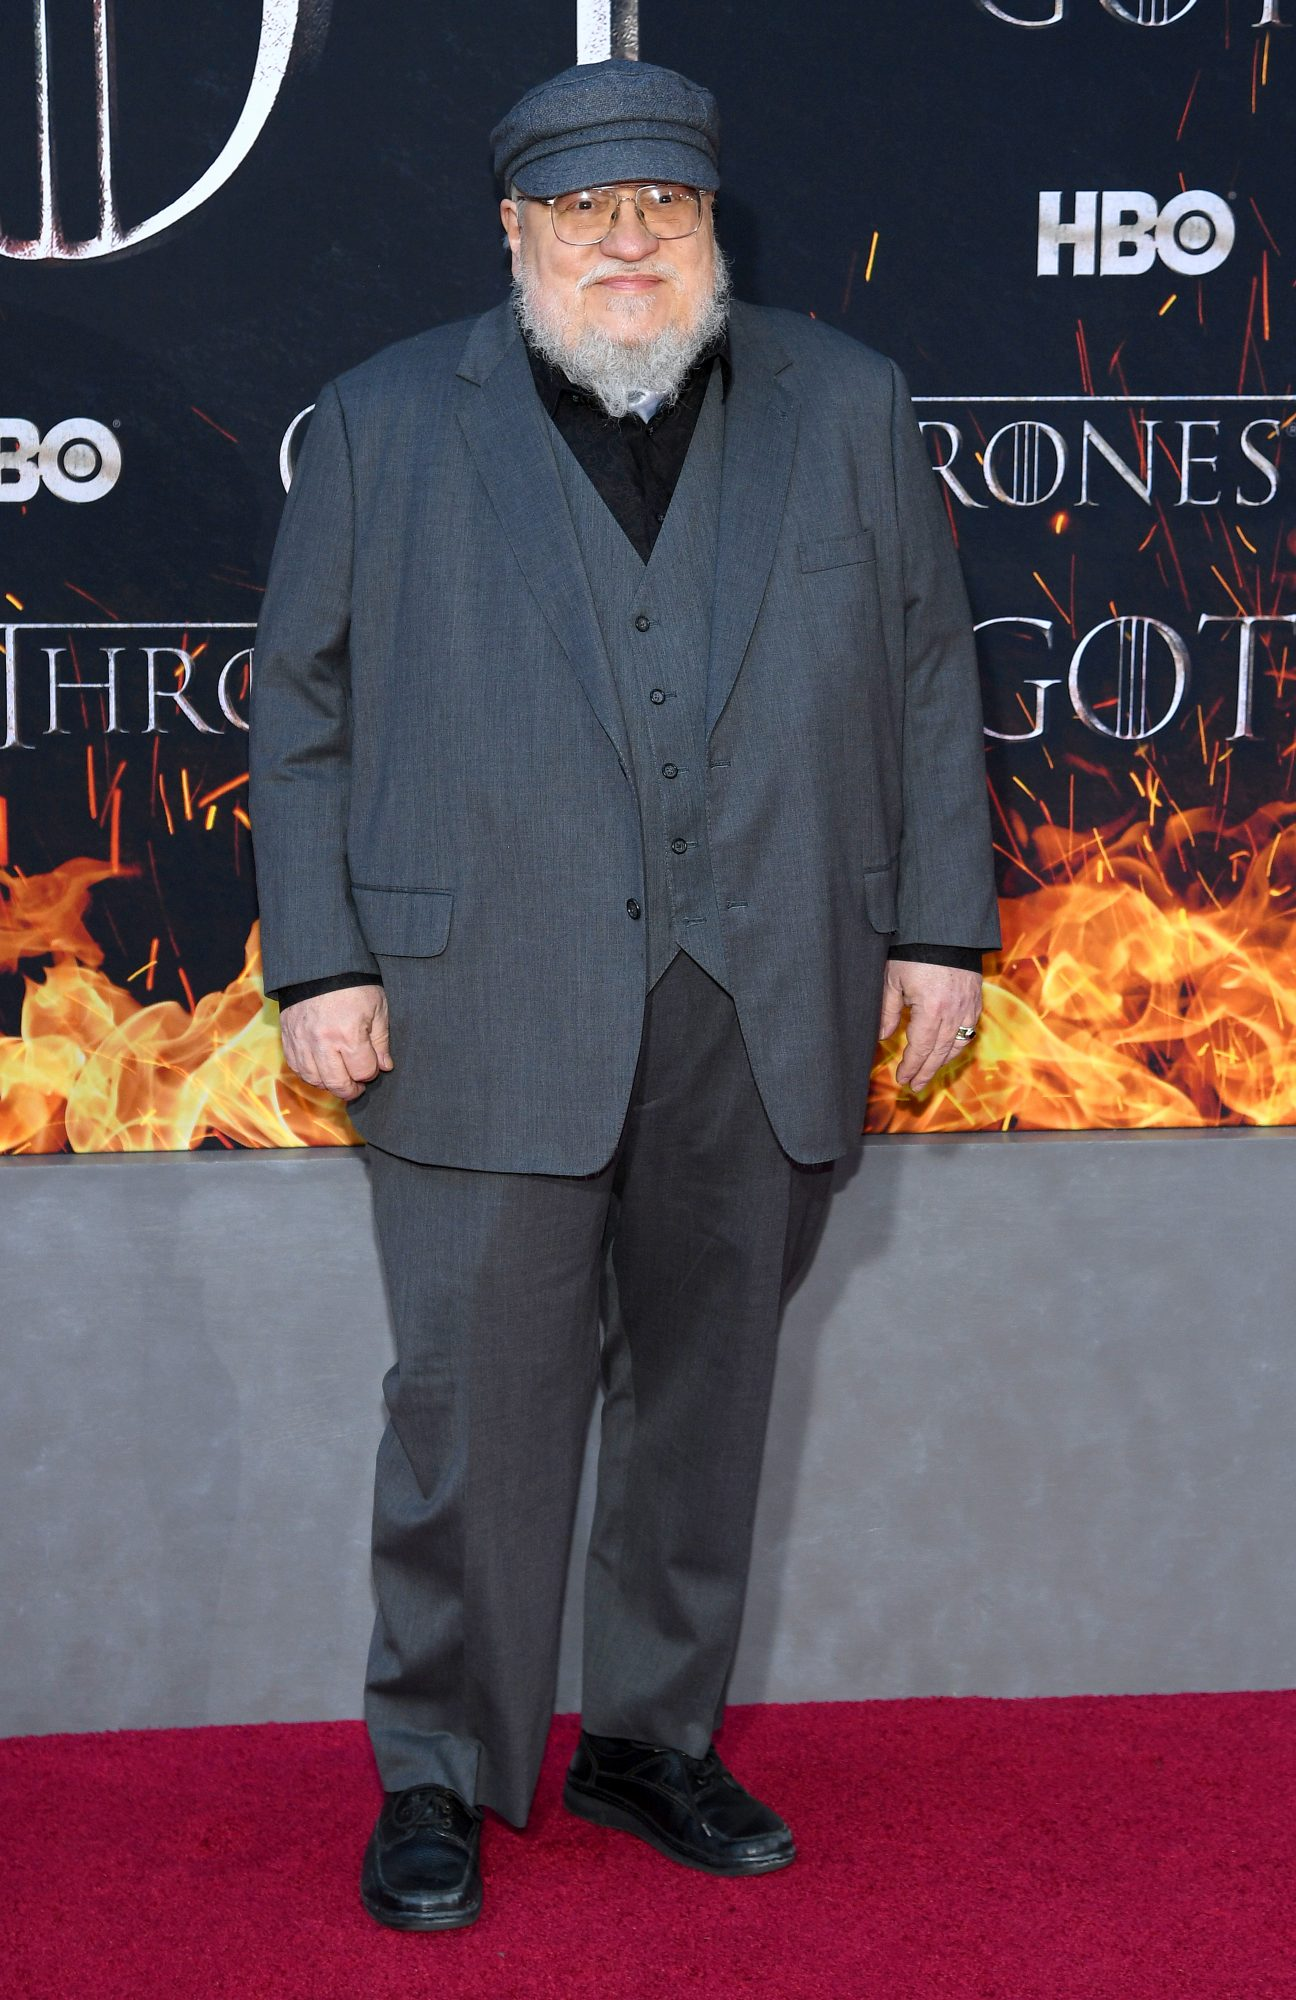 """NEW YORK, NEW YORK - APRIL 03: George R. R. Martin attends the """"Game Of Thrones"""" Season 8 Premiere on April 03, 2019 in New York City. (Photo by Dimitrios Kambouris/Getty Images)"""